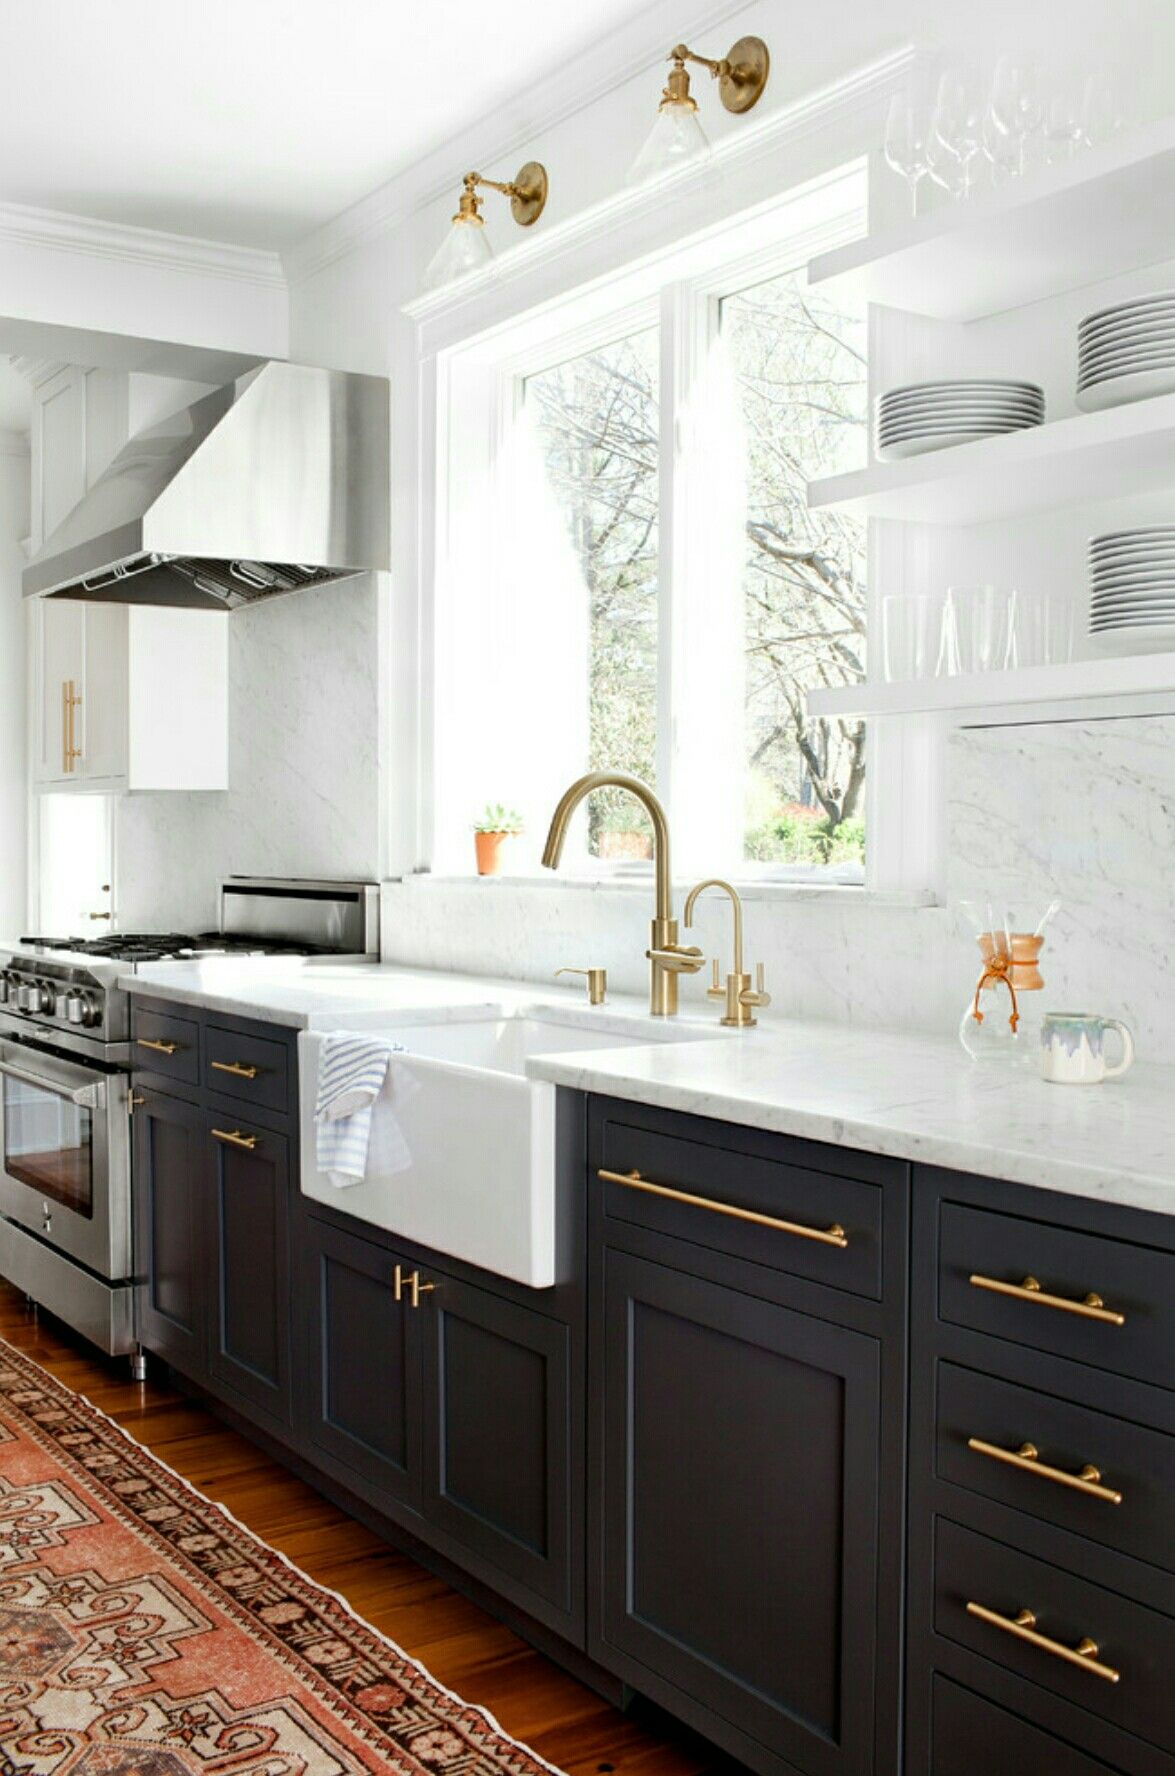 dark base cabinets, white walls, white marble countertops and